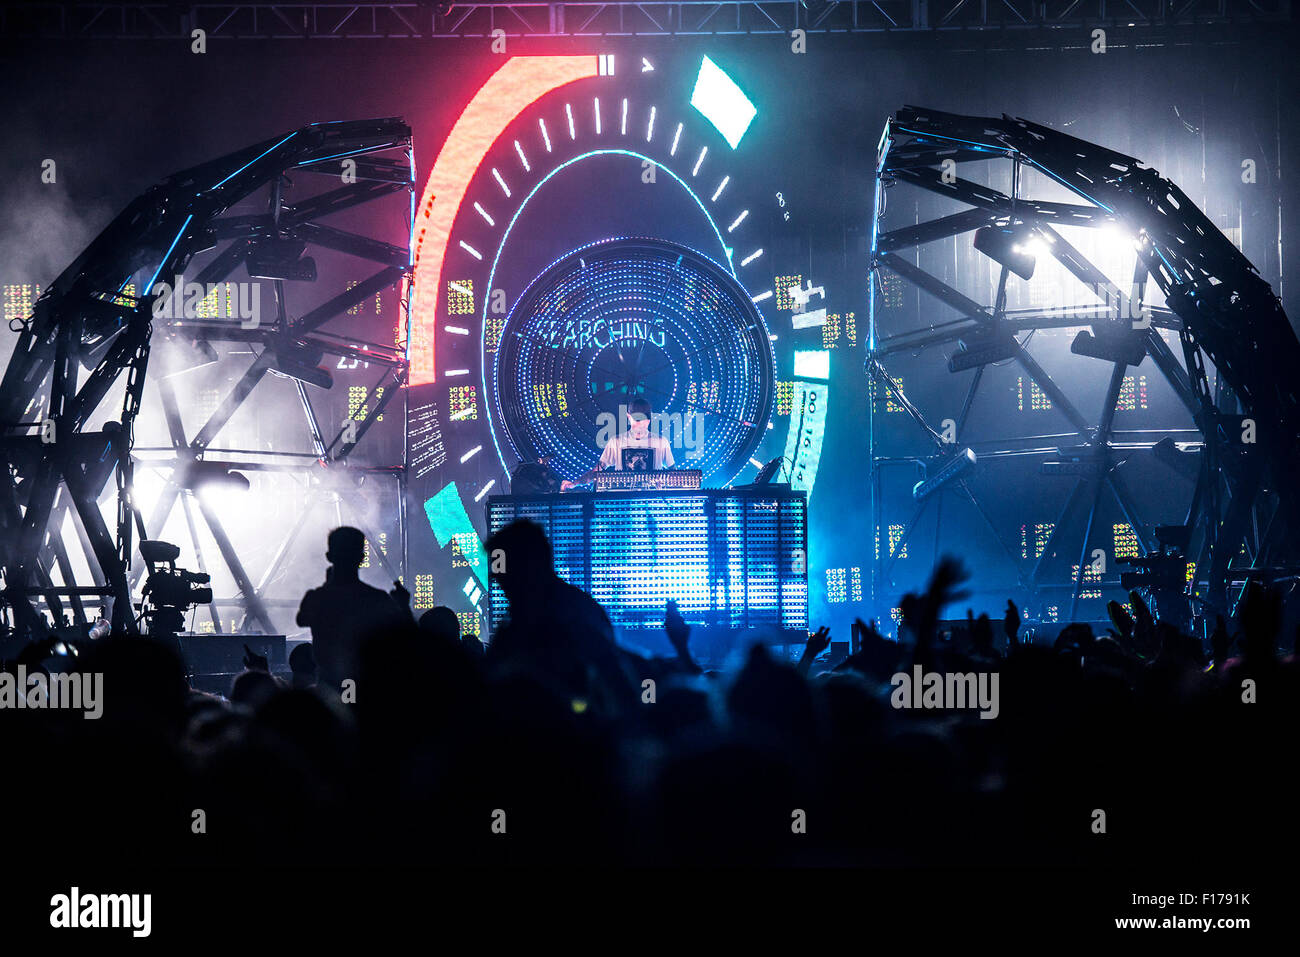 Leeds, UK. 28th August 2015. Deadmou5 headline's the NME stage at  Leeds Festival, Bramham Park 28/08/2015  Credit: Stock Photo